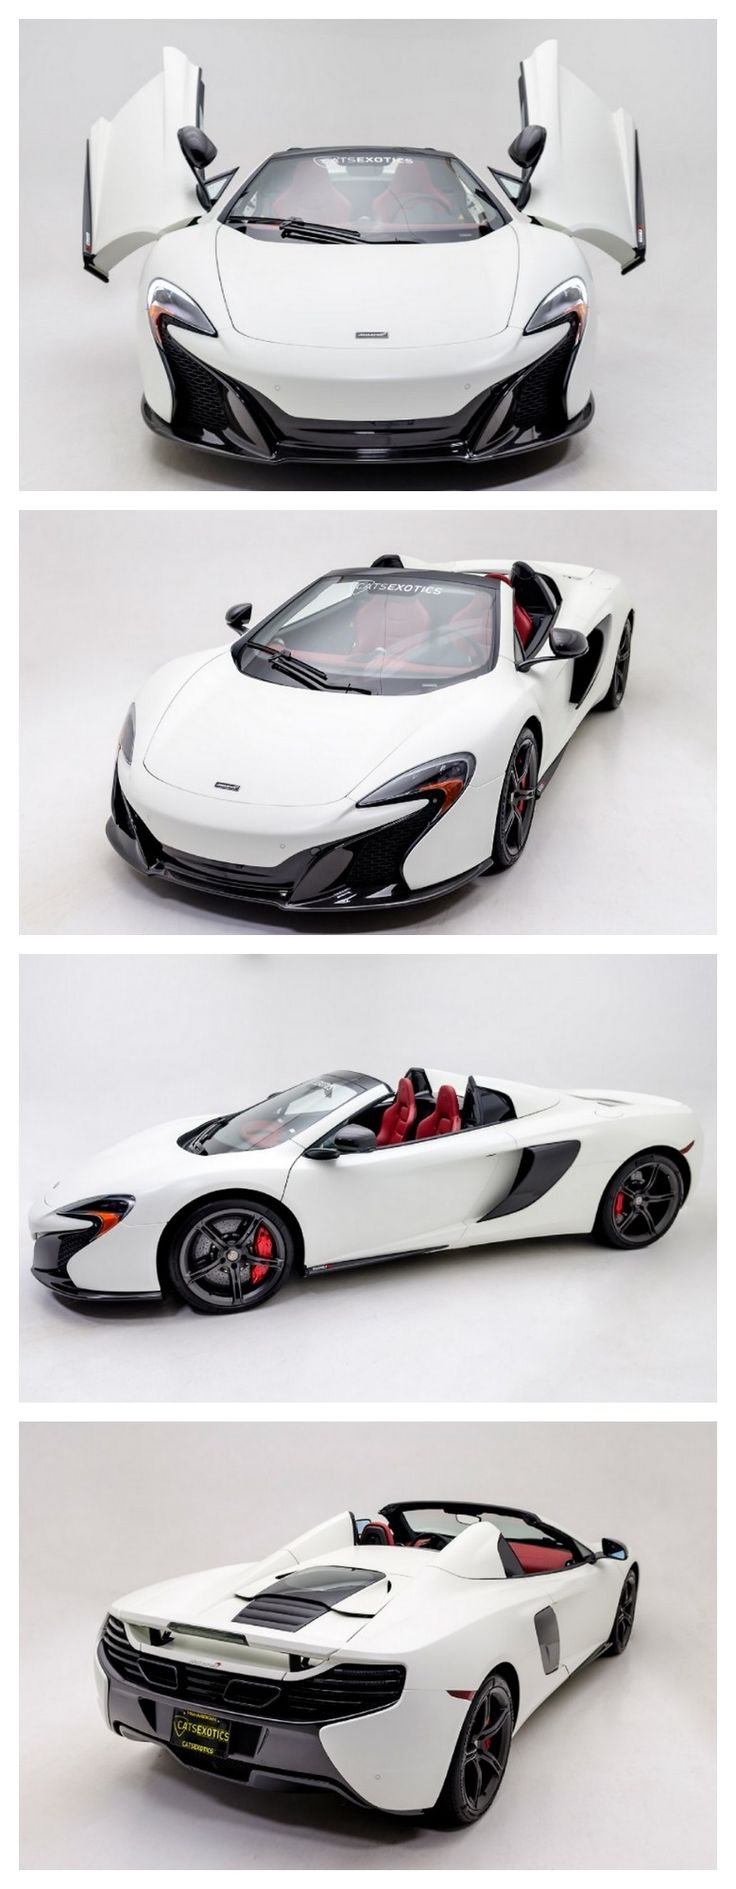 2015 mclaren mp4 12c coupon codes self storage and cars. Black Bedroom Furniture Sets. Home Design Ideas